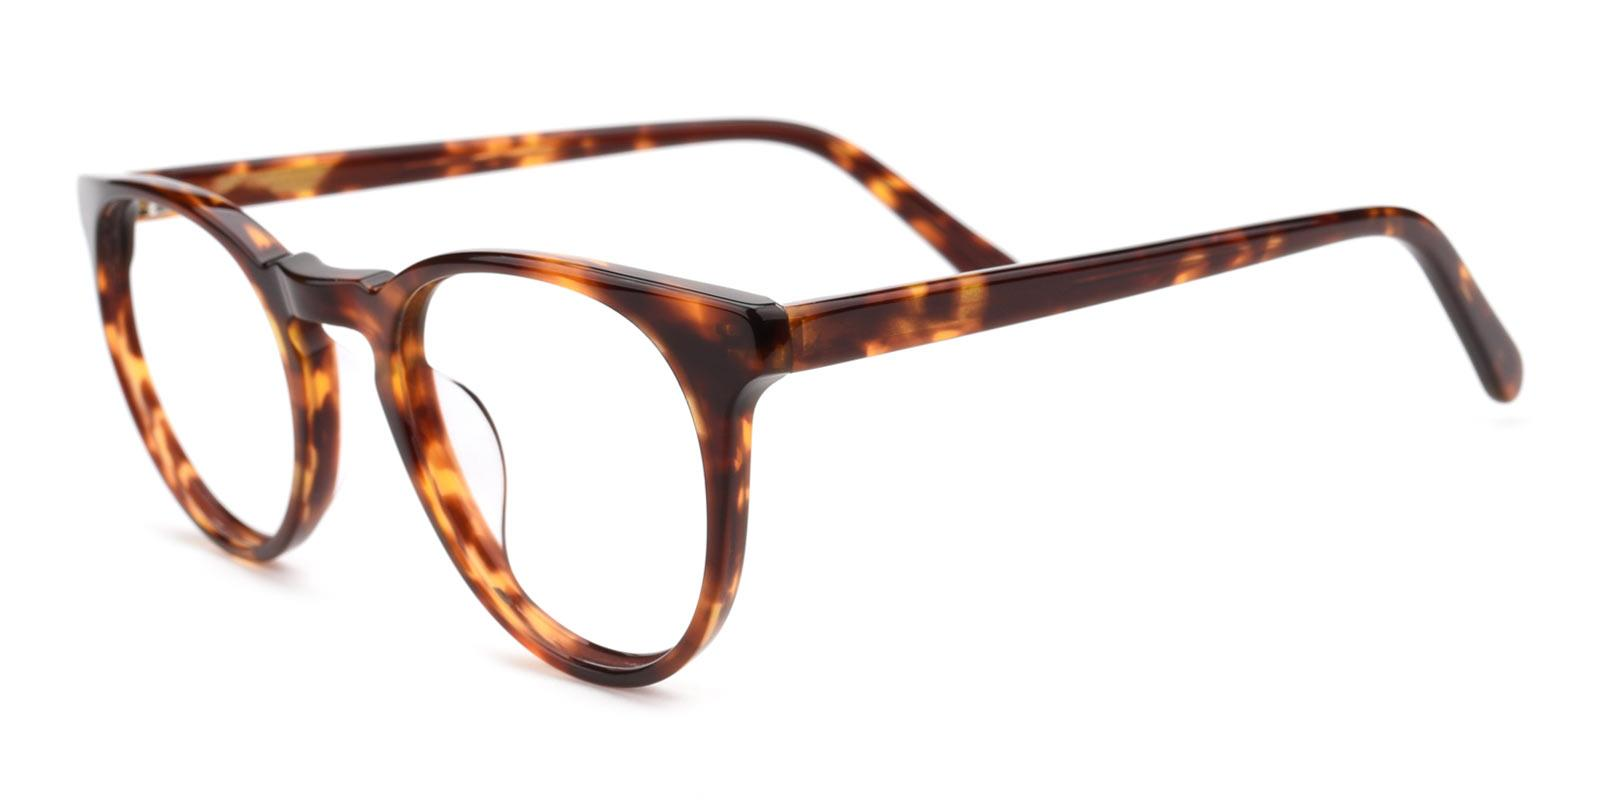 March-Tortoise-Round-Acetate-Eyeglasses-additional1